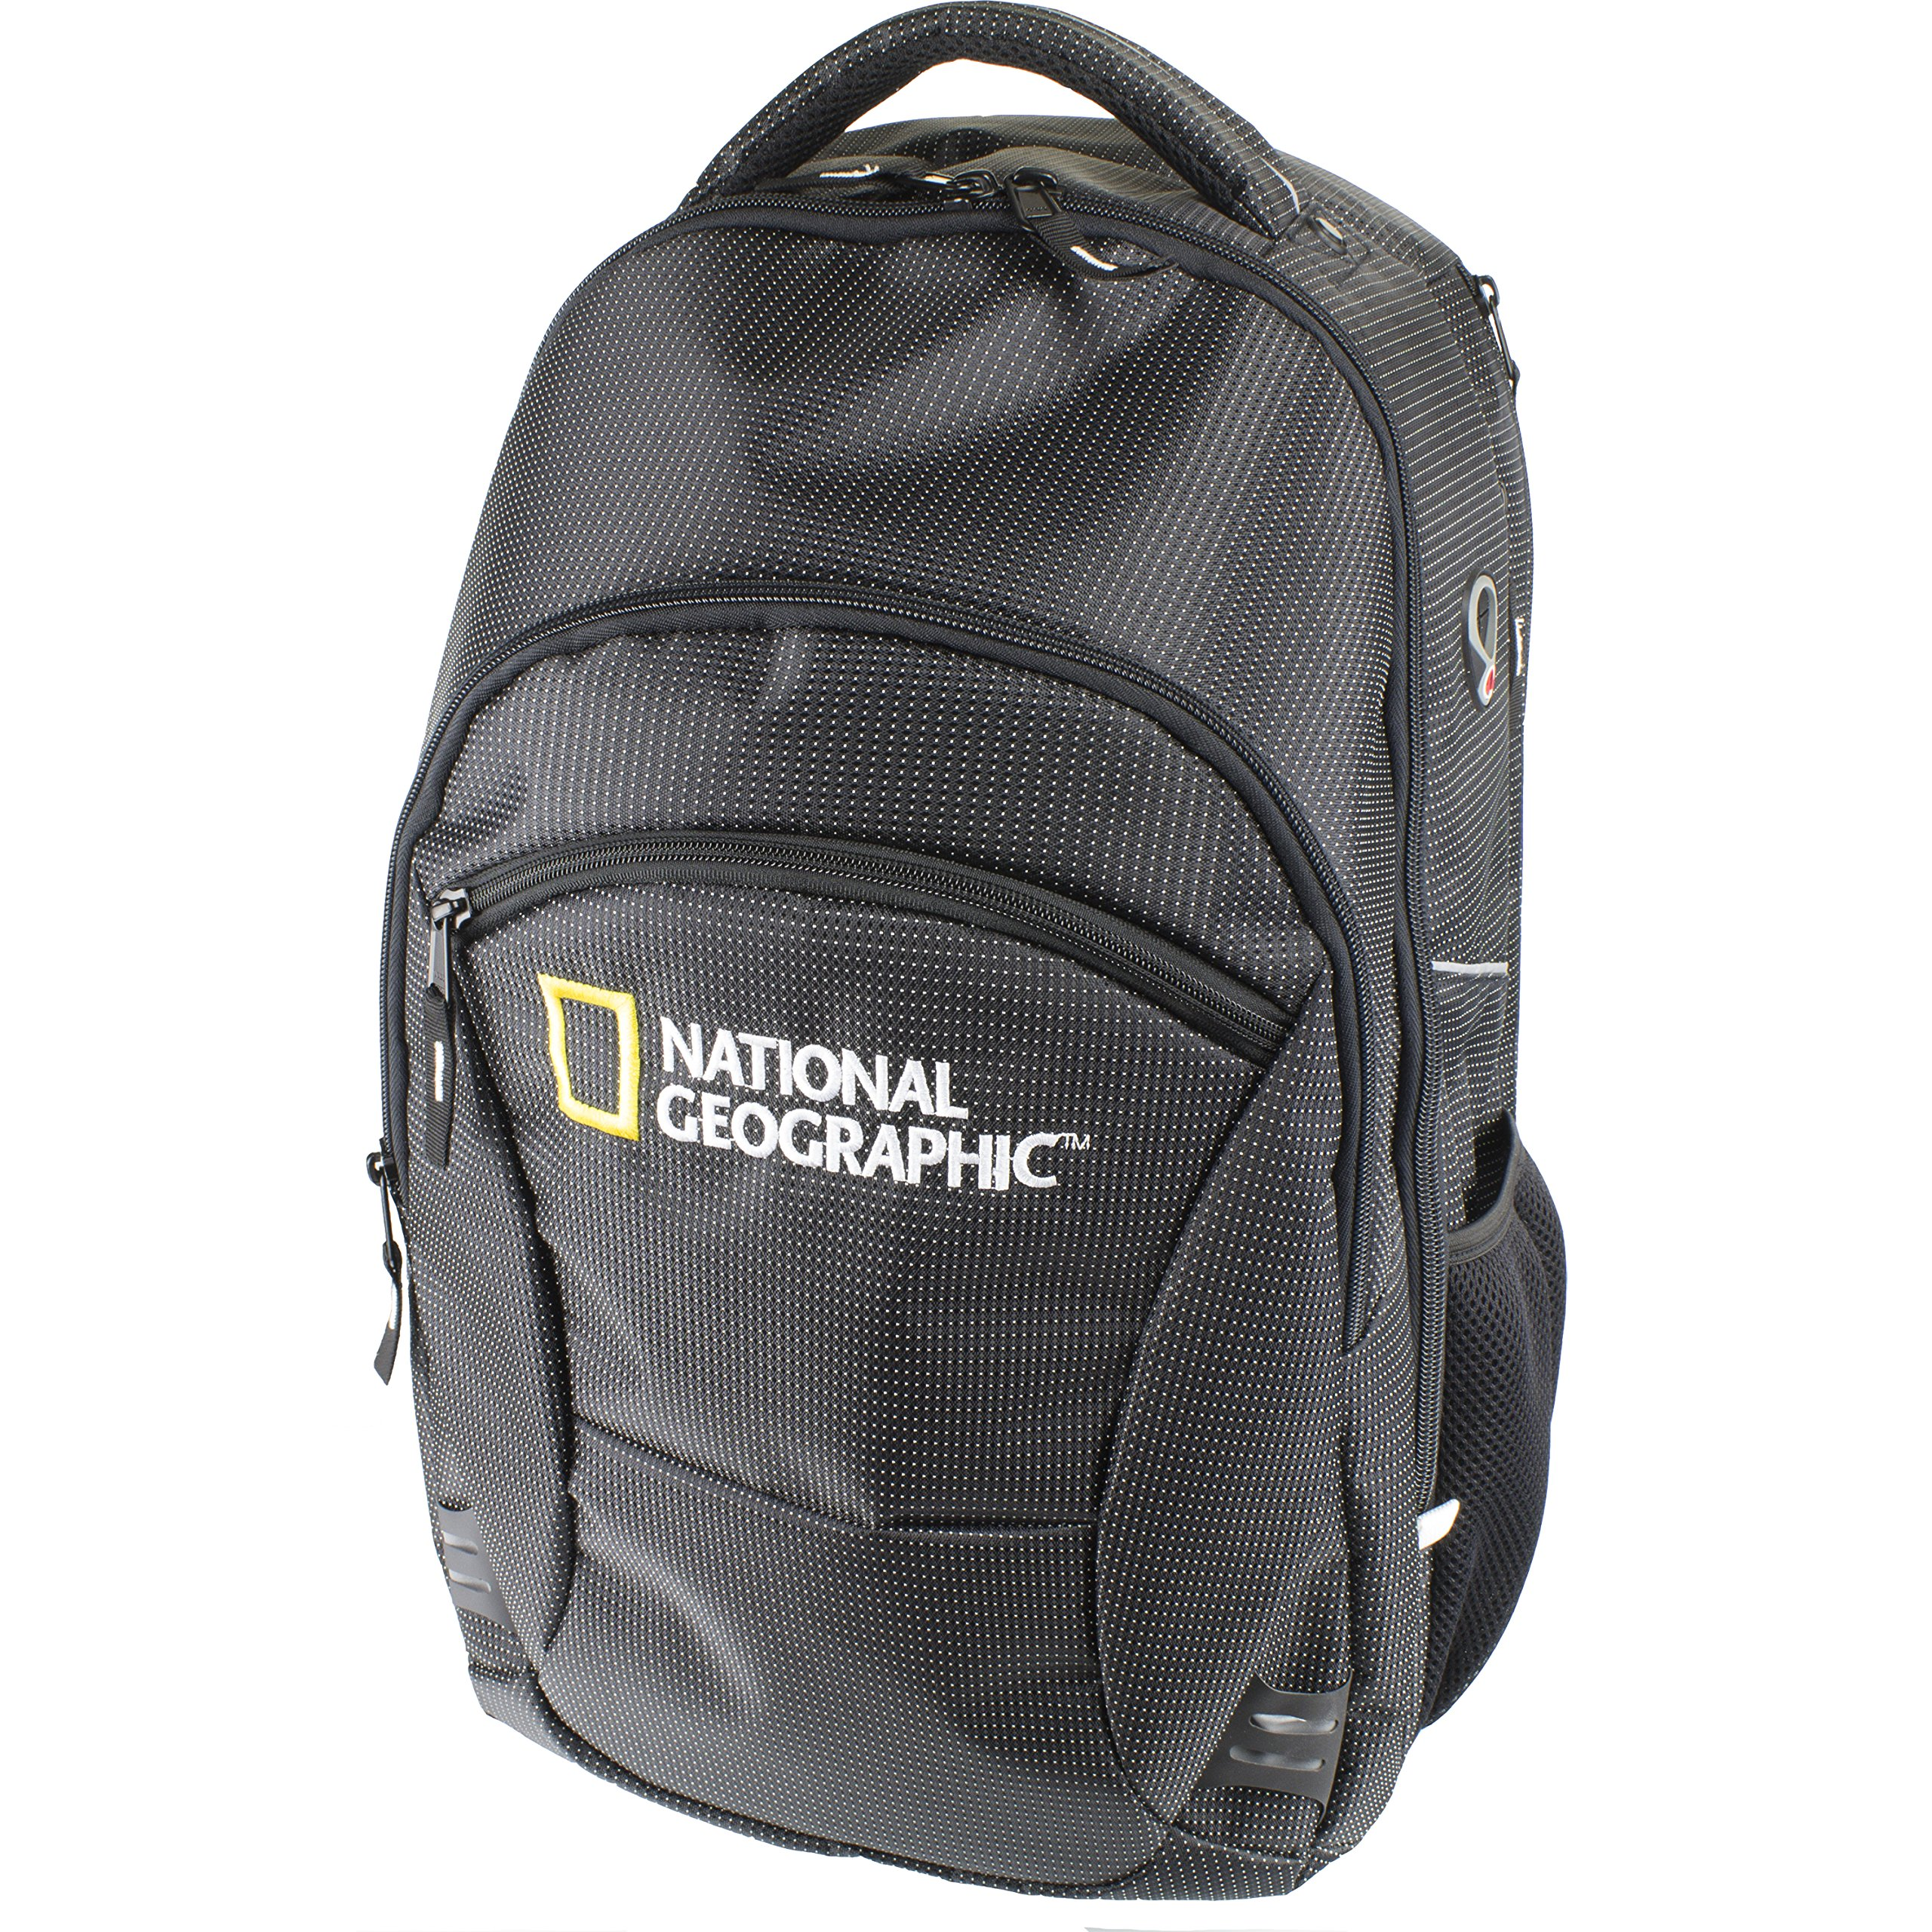 National Geographic Black and Yellow Deluxe Boat Bag Backpack